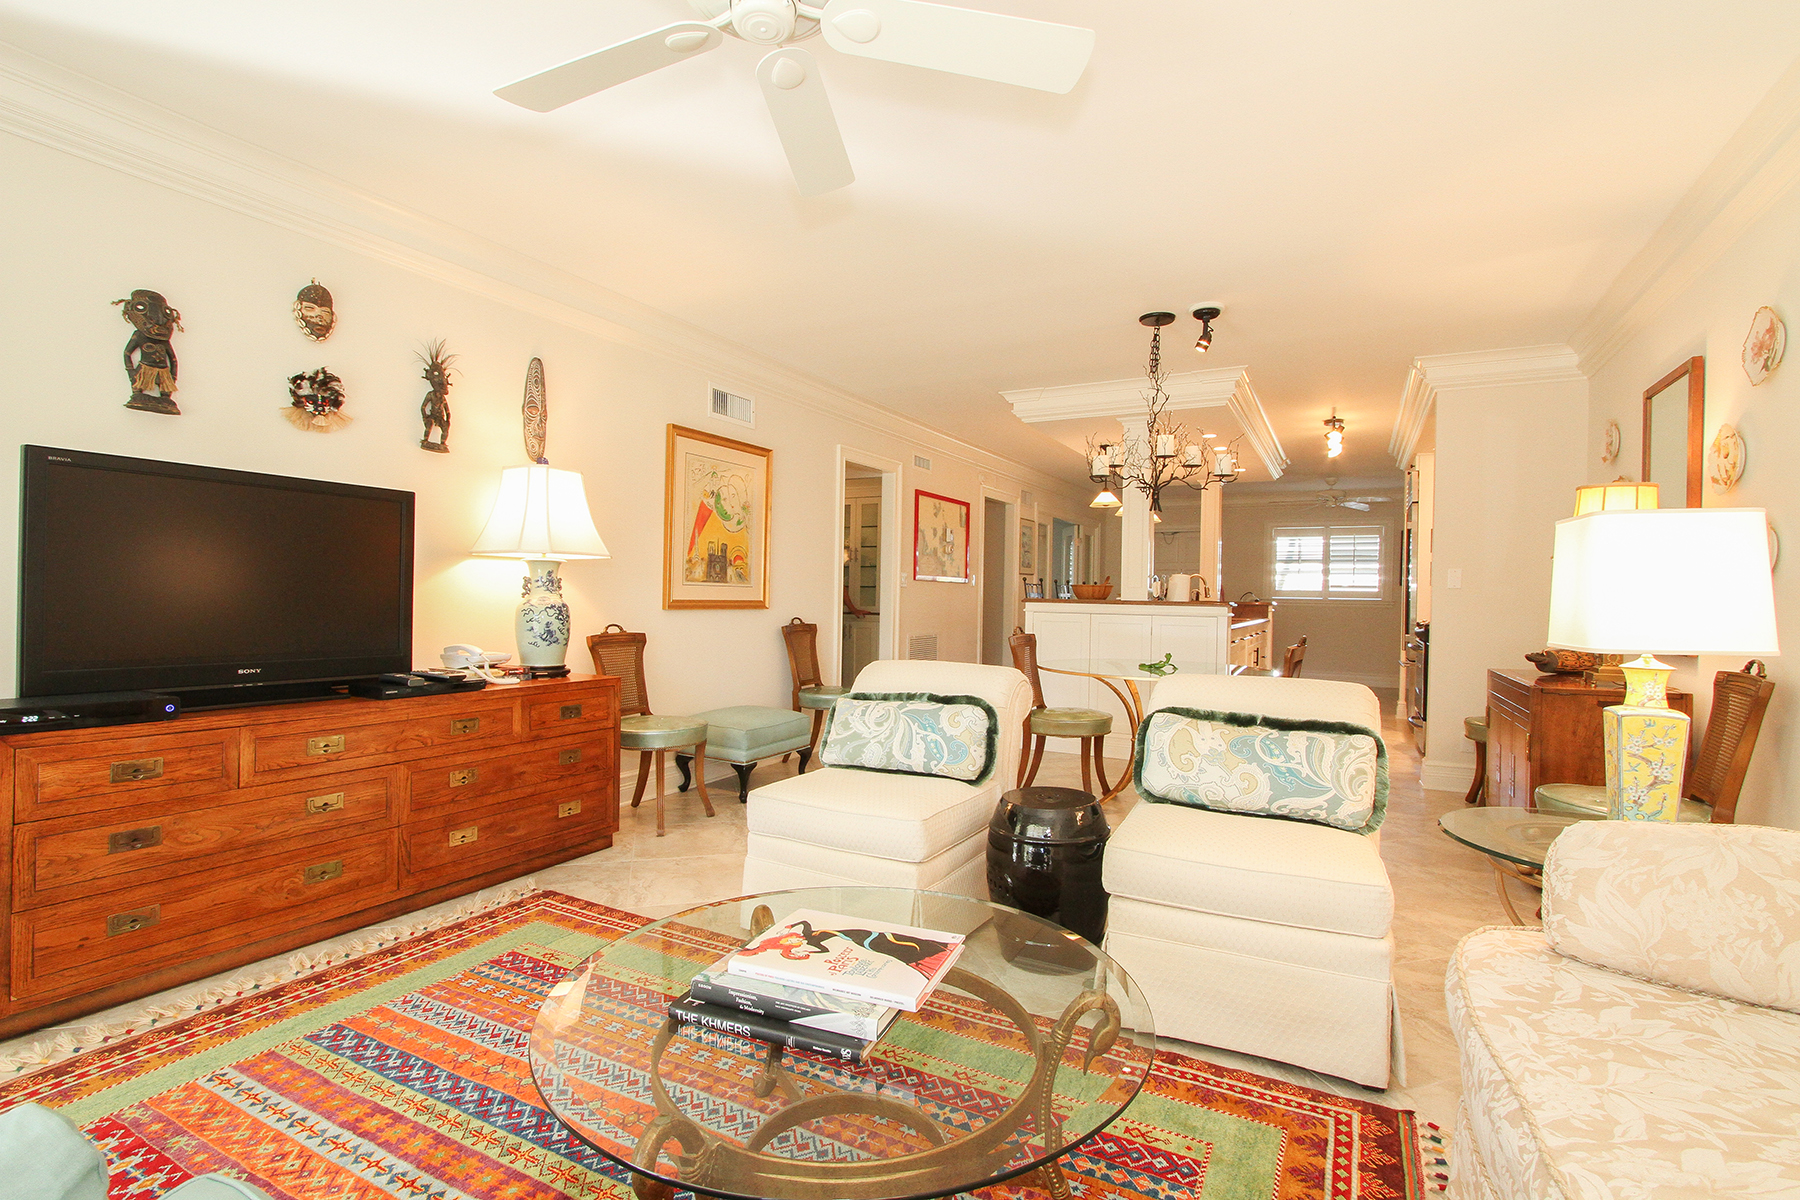 Condominium for Rent at OLD NAPLES-SOUTH BEACH CLUB 1051 3rd St S 206, Naples, Florida 34102 United States